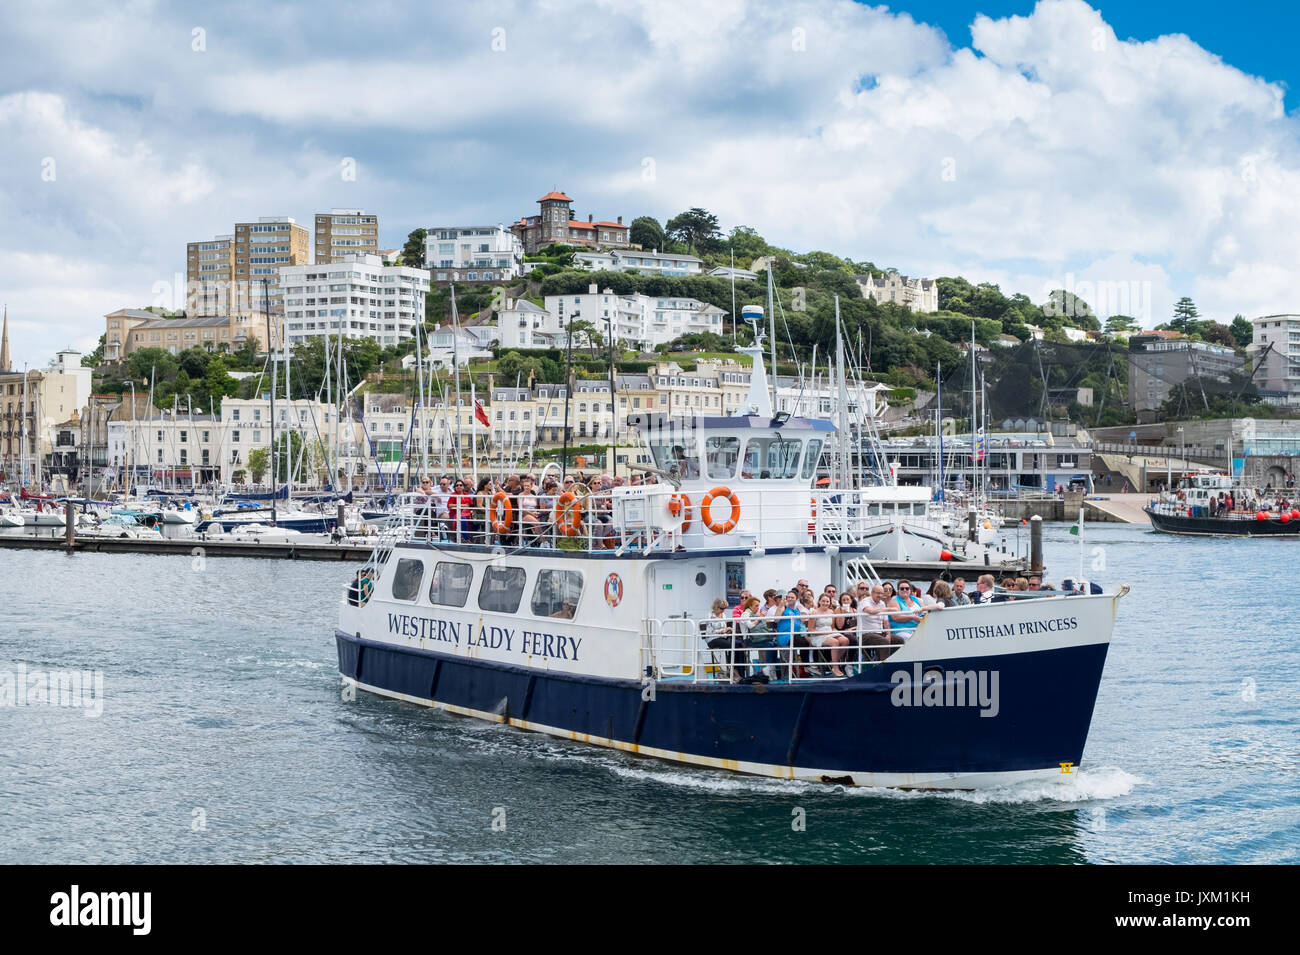 Western Lady Ferry (Torquay to Brigham Ferry) pictured Leaving Torquay Harbour, Torquay, Devon, UK - Stock Image